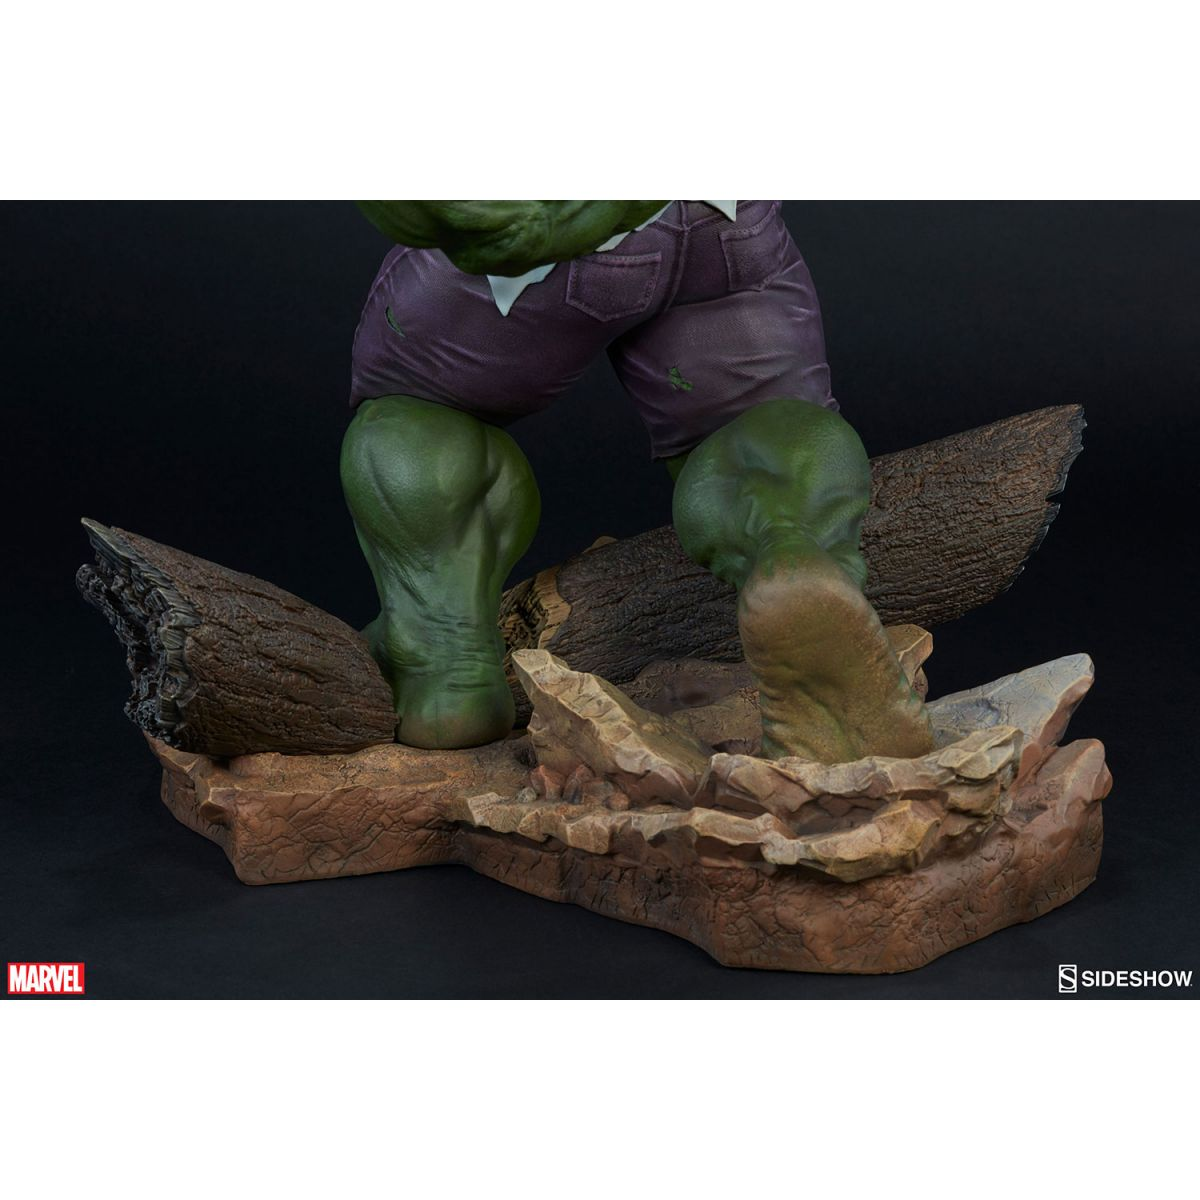 Sideshow Hulk and Wolverine Maquette  - Movie Freaks Collectibles